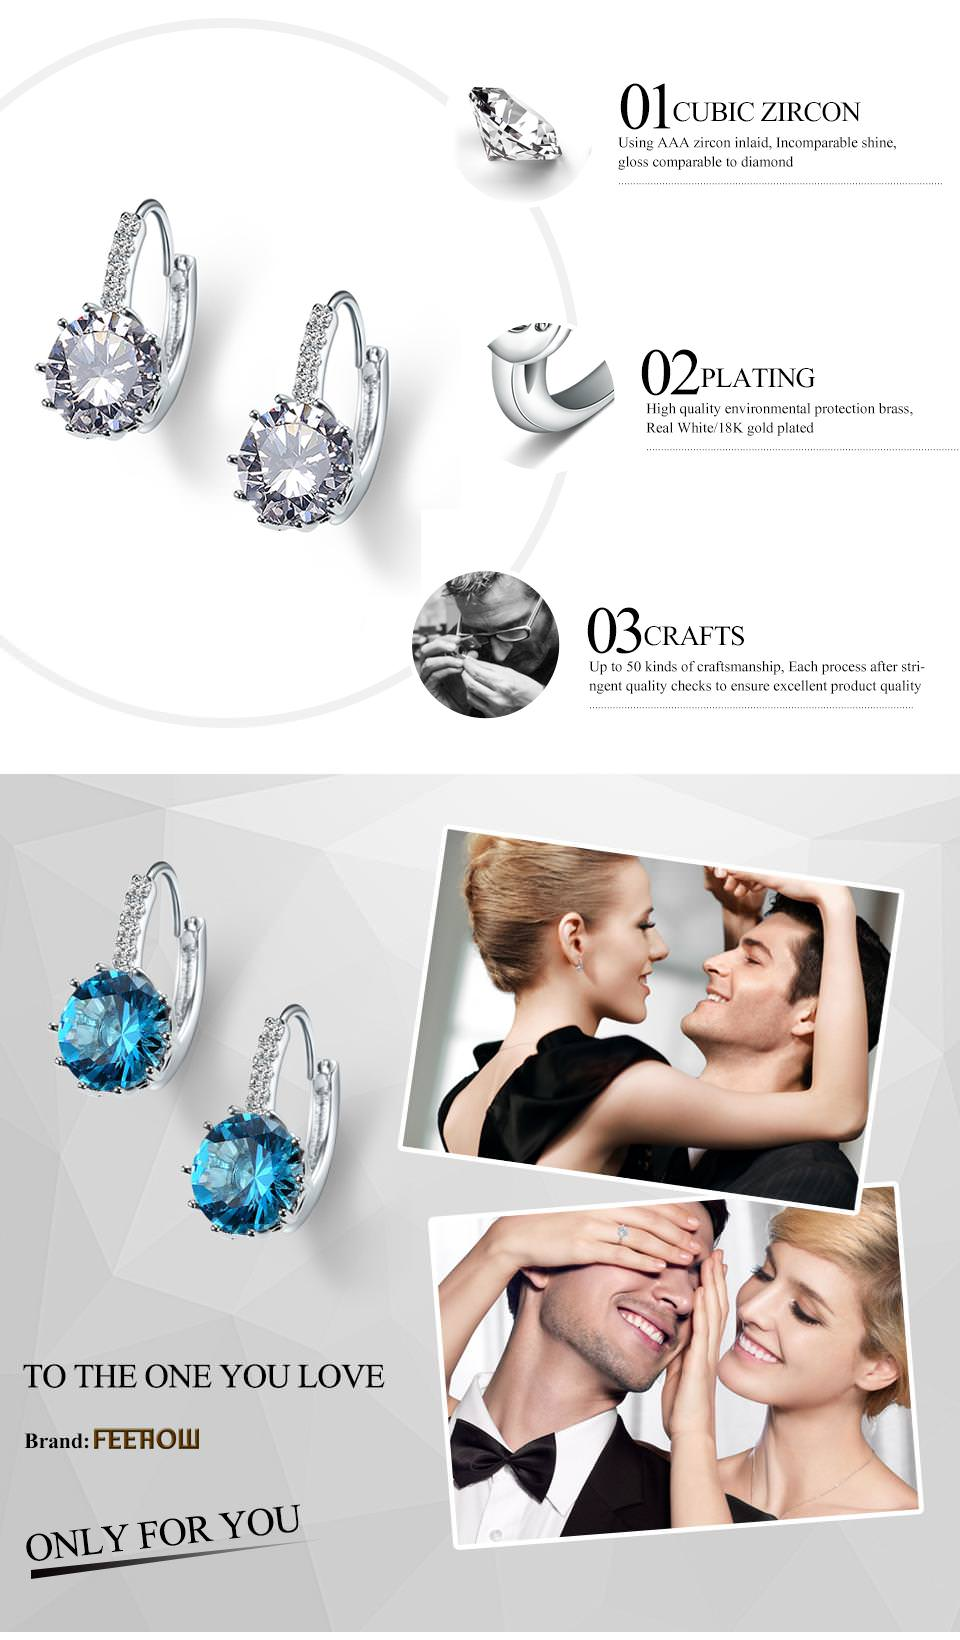 11576-ee46decaea0b4676107e04171410873a FEEHOW Cubic Zirconia Lever Back Wedding Earring Jewelry